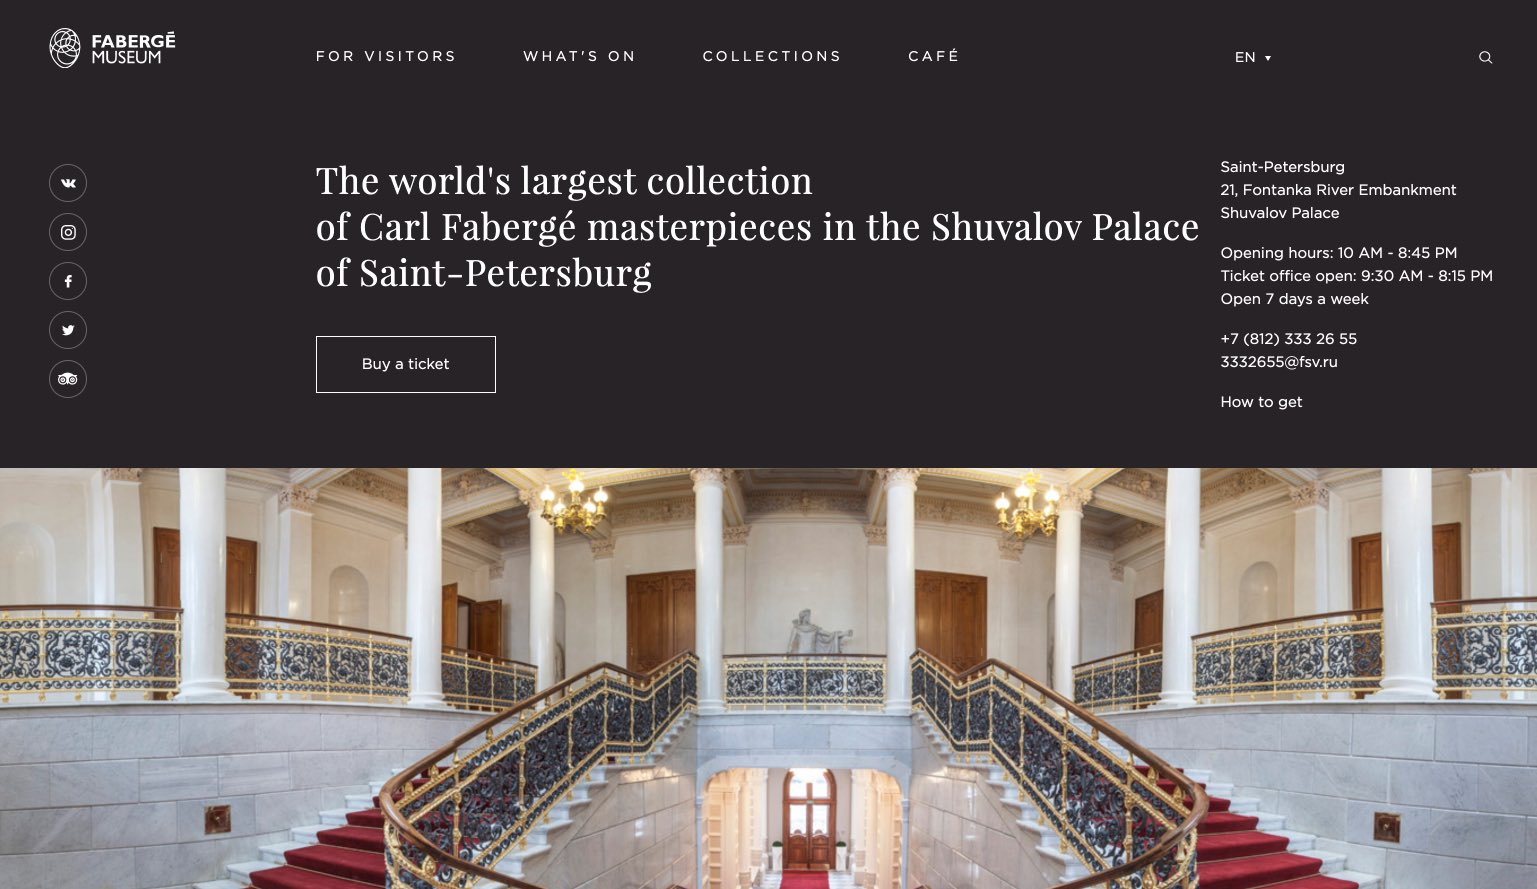 Website of the Fabergé museum in St. Petersburg